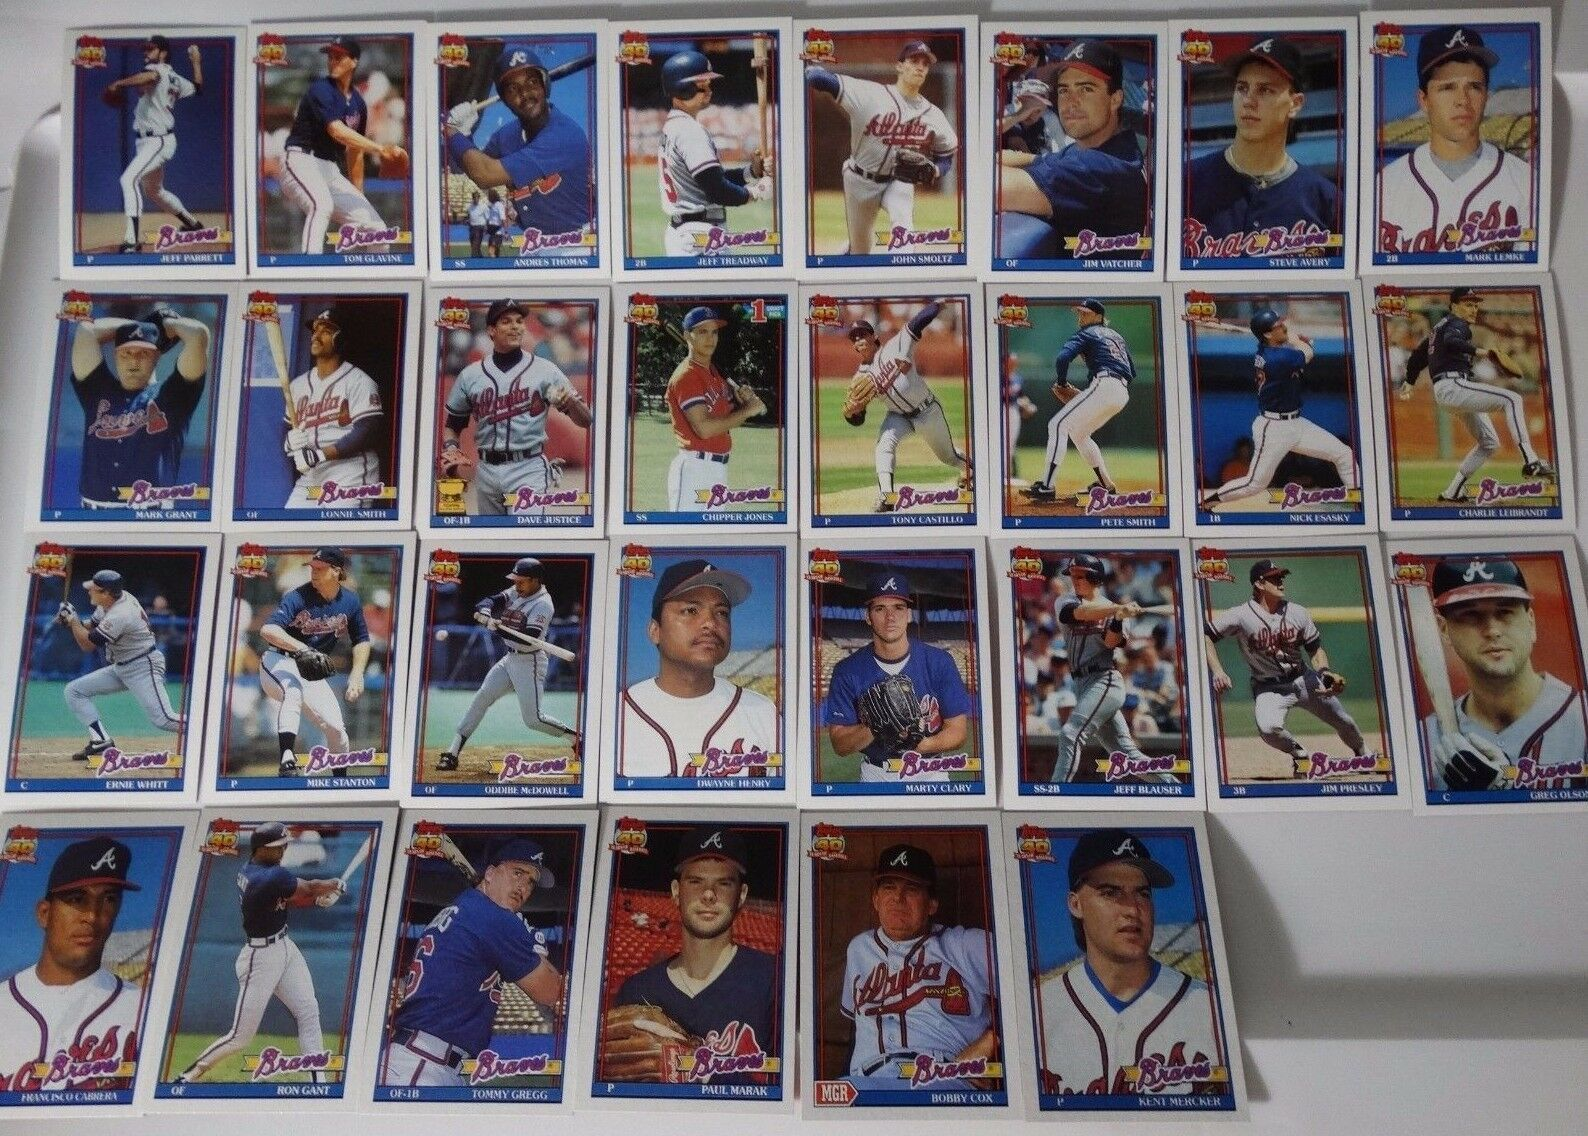 1991 Topps Atlanta Braves Team Set of 34 Baseball Cards With Traded image 2